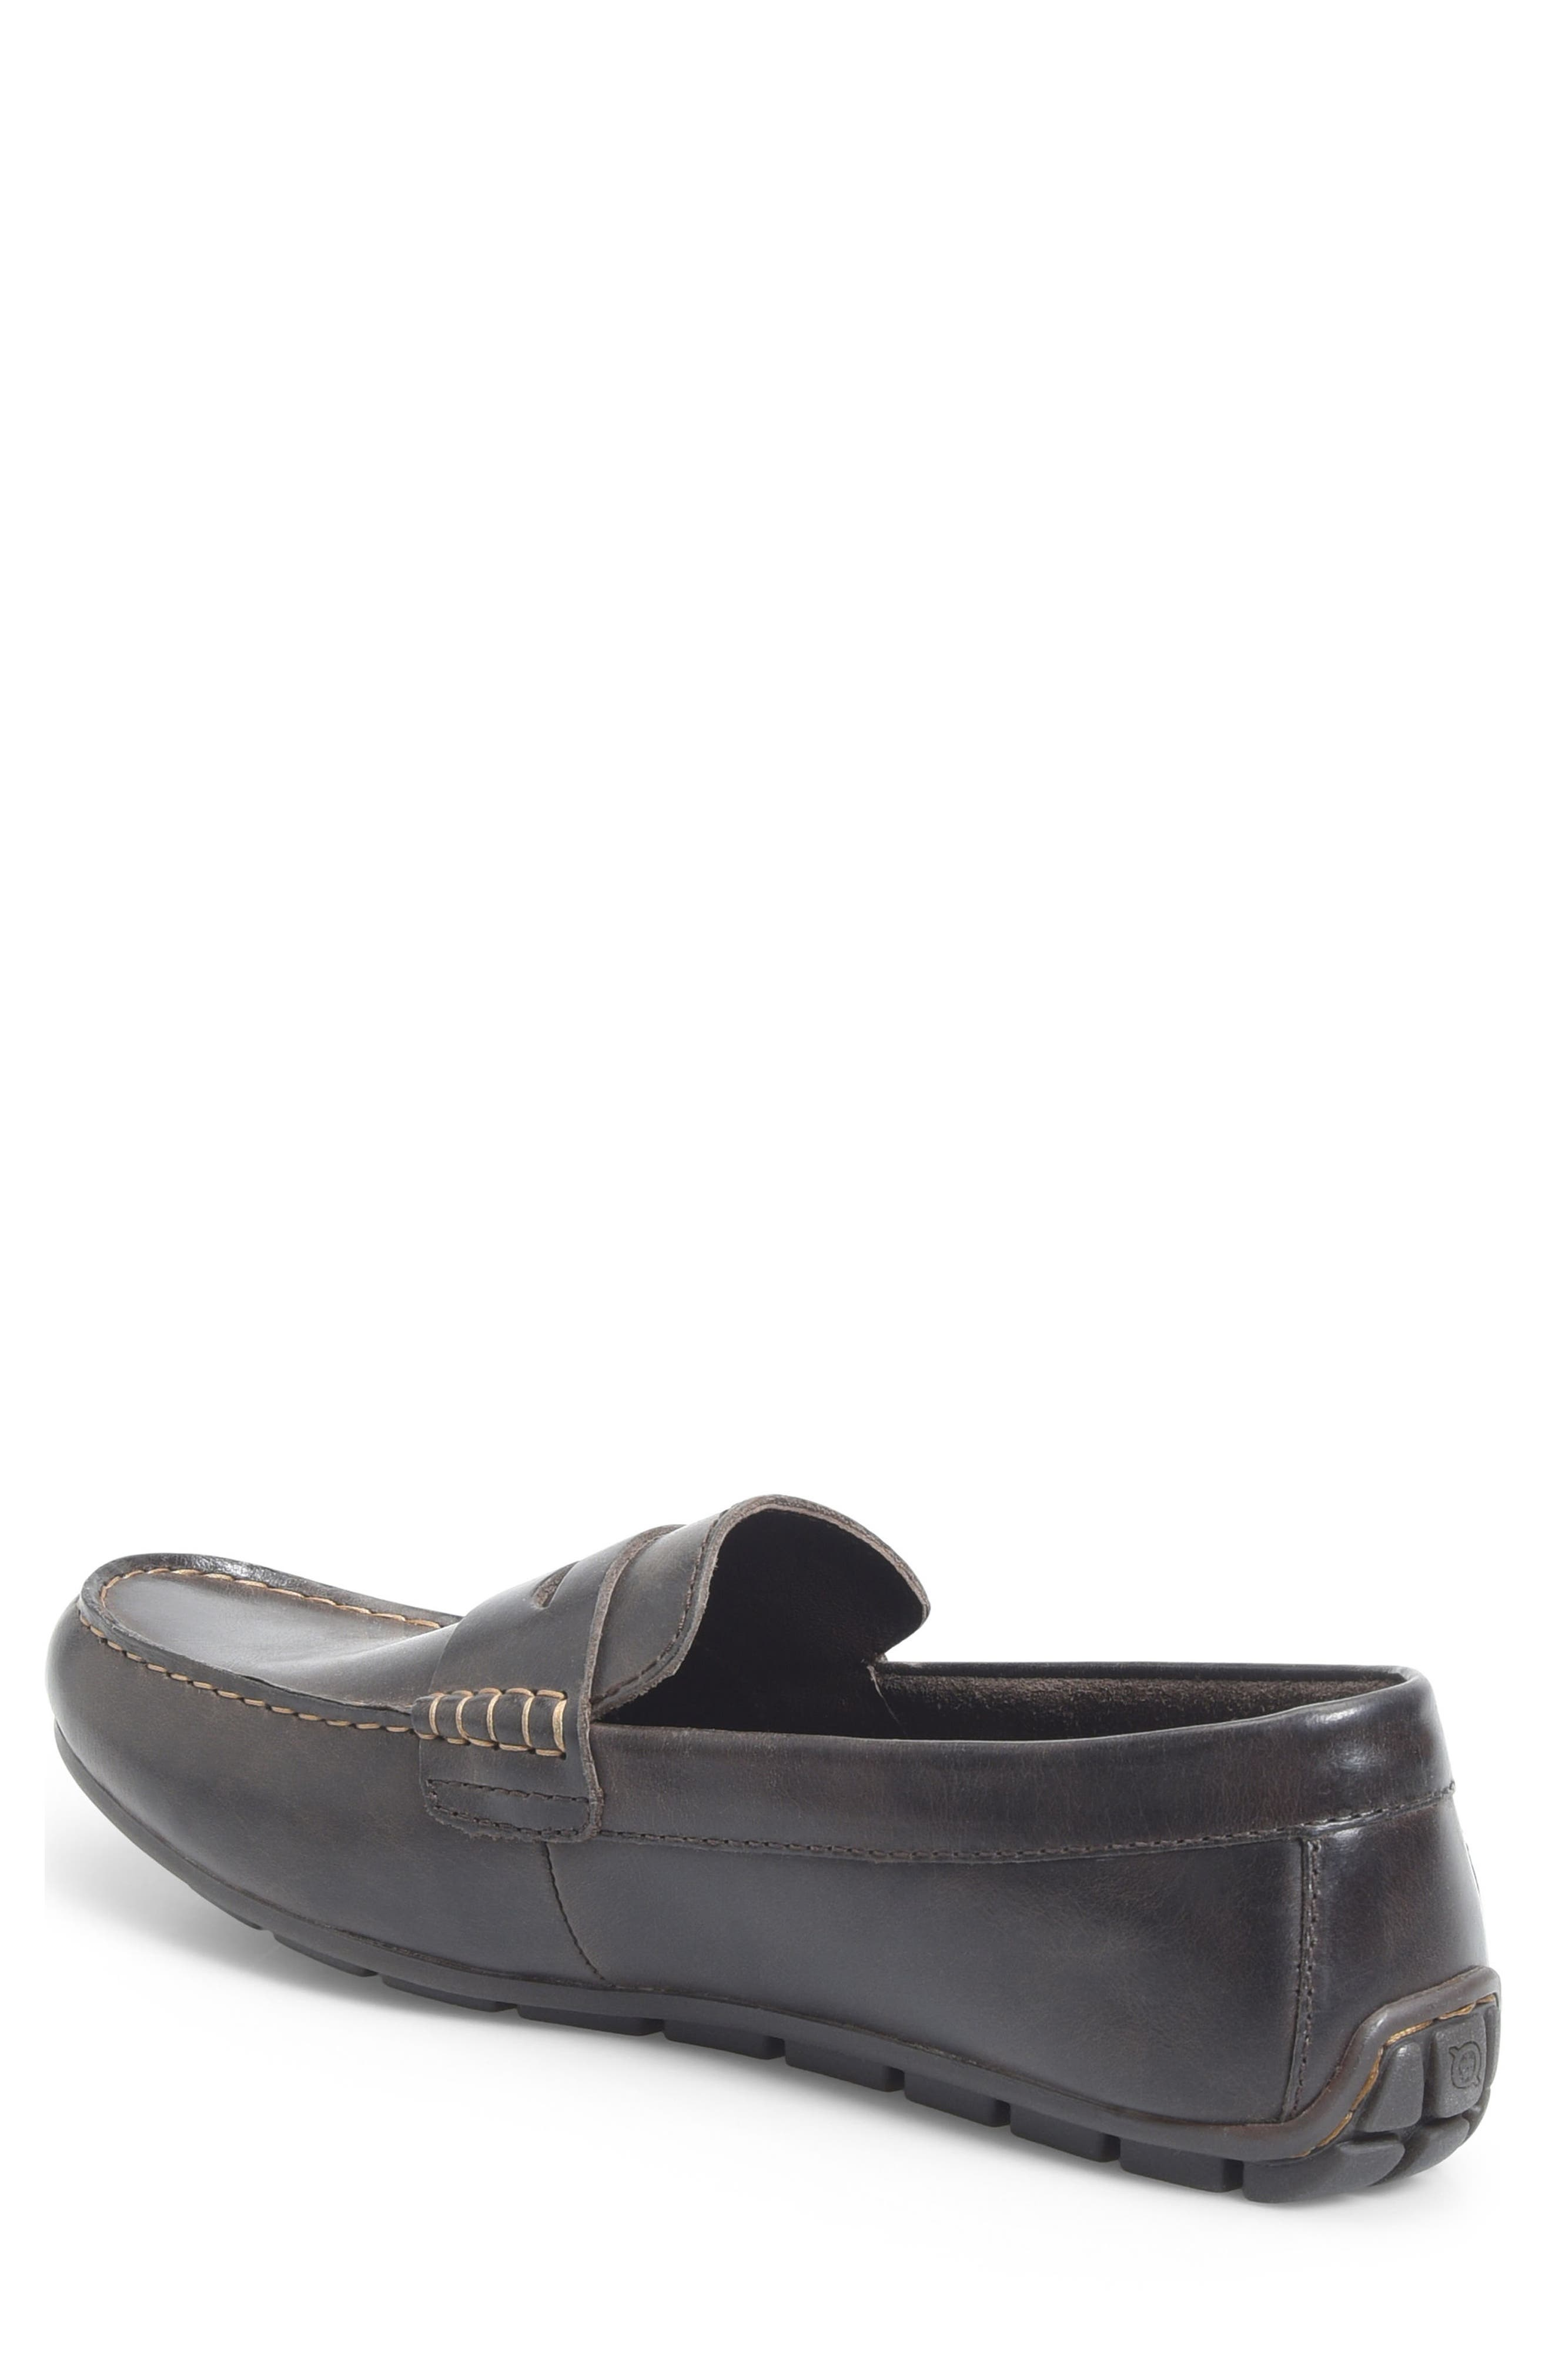 Andes Driving Shoe,                             Alternate thumbnail 2, color,                             Chocolate